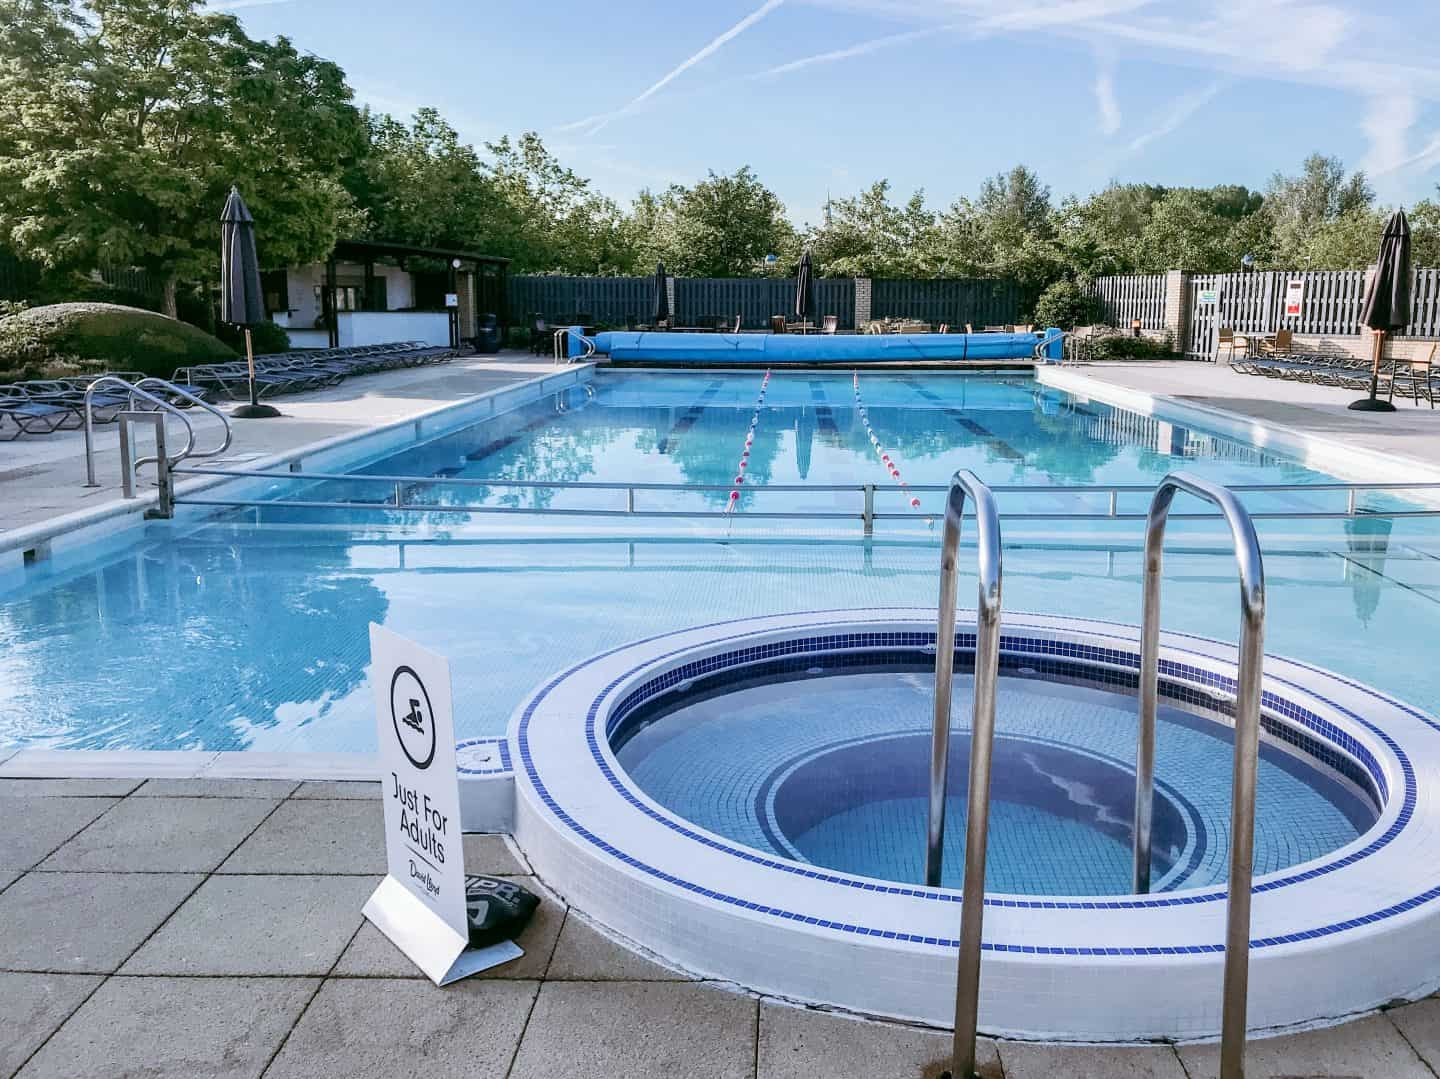 The outside swimming pool and hot tub at David LLoyd Clubs, Milton Keynes